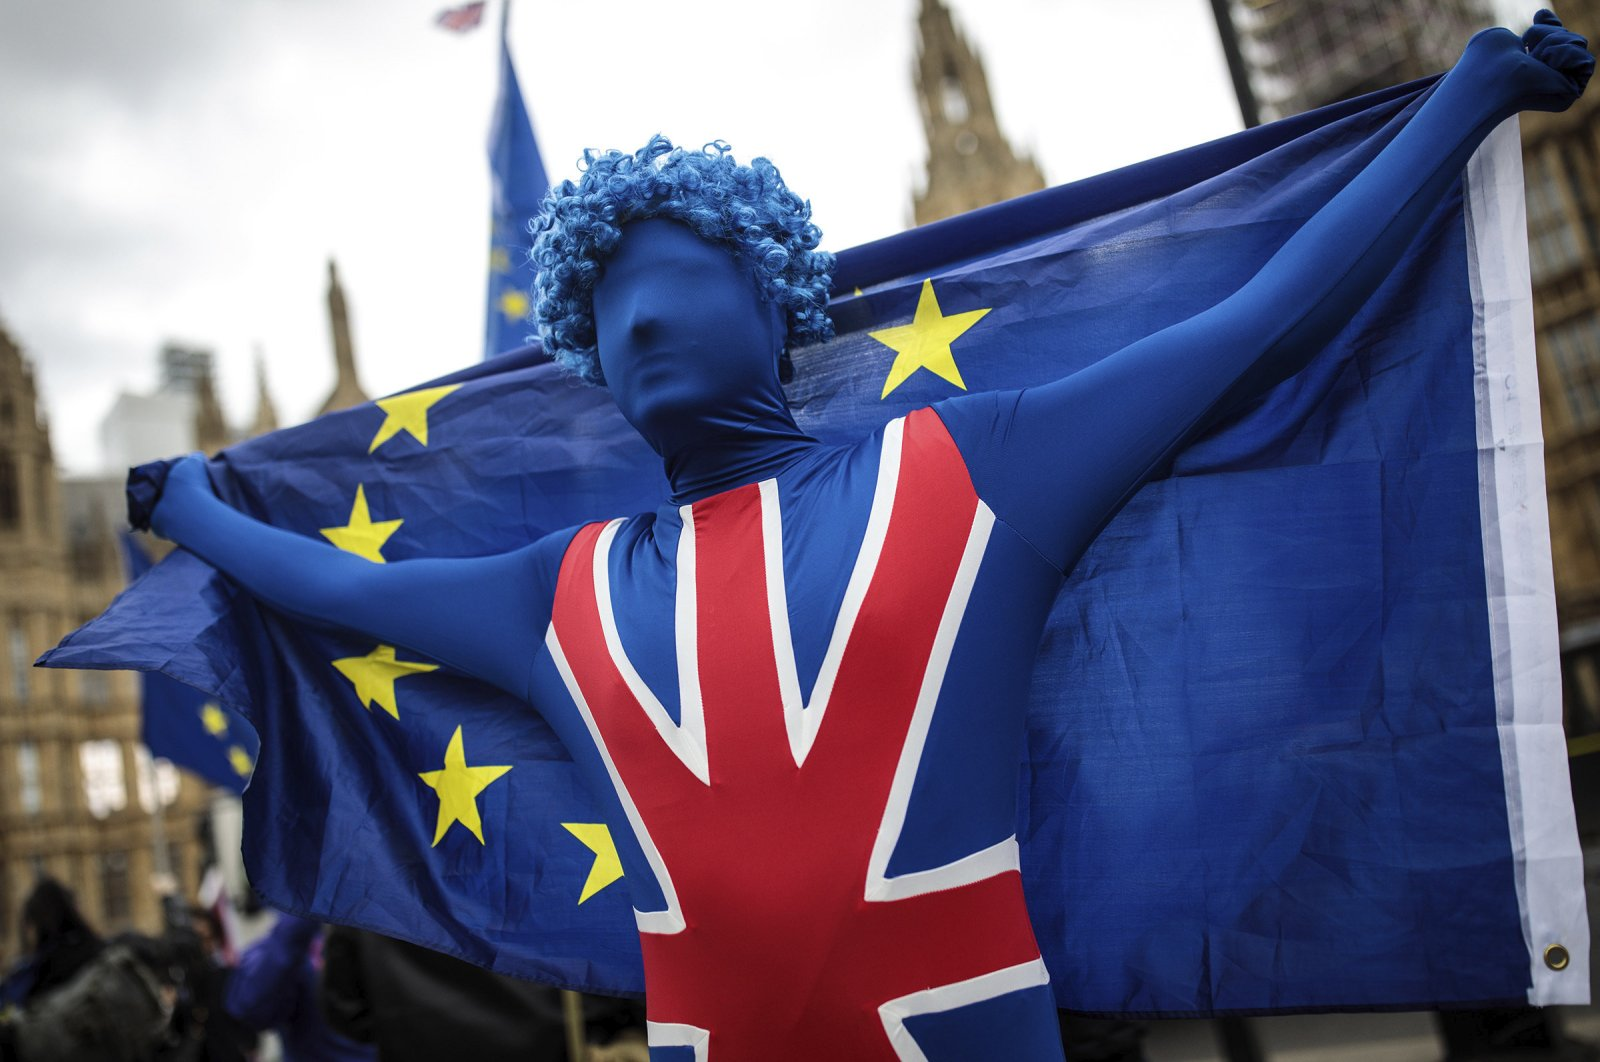 Anti-Brexit campaigners demonstrate outside the Houses of Parliament with EU flags as members of Parliament return following Easter break, London, England, April 16, 2018. (Getty Photo)